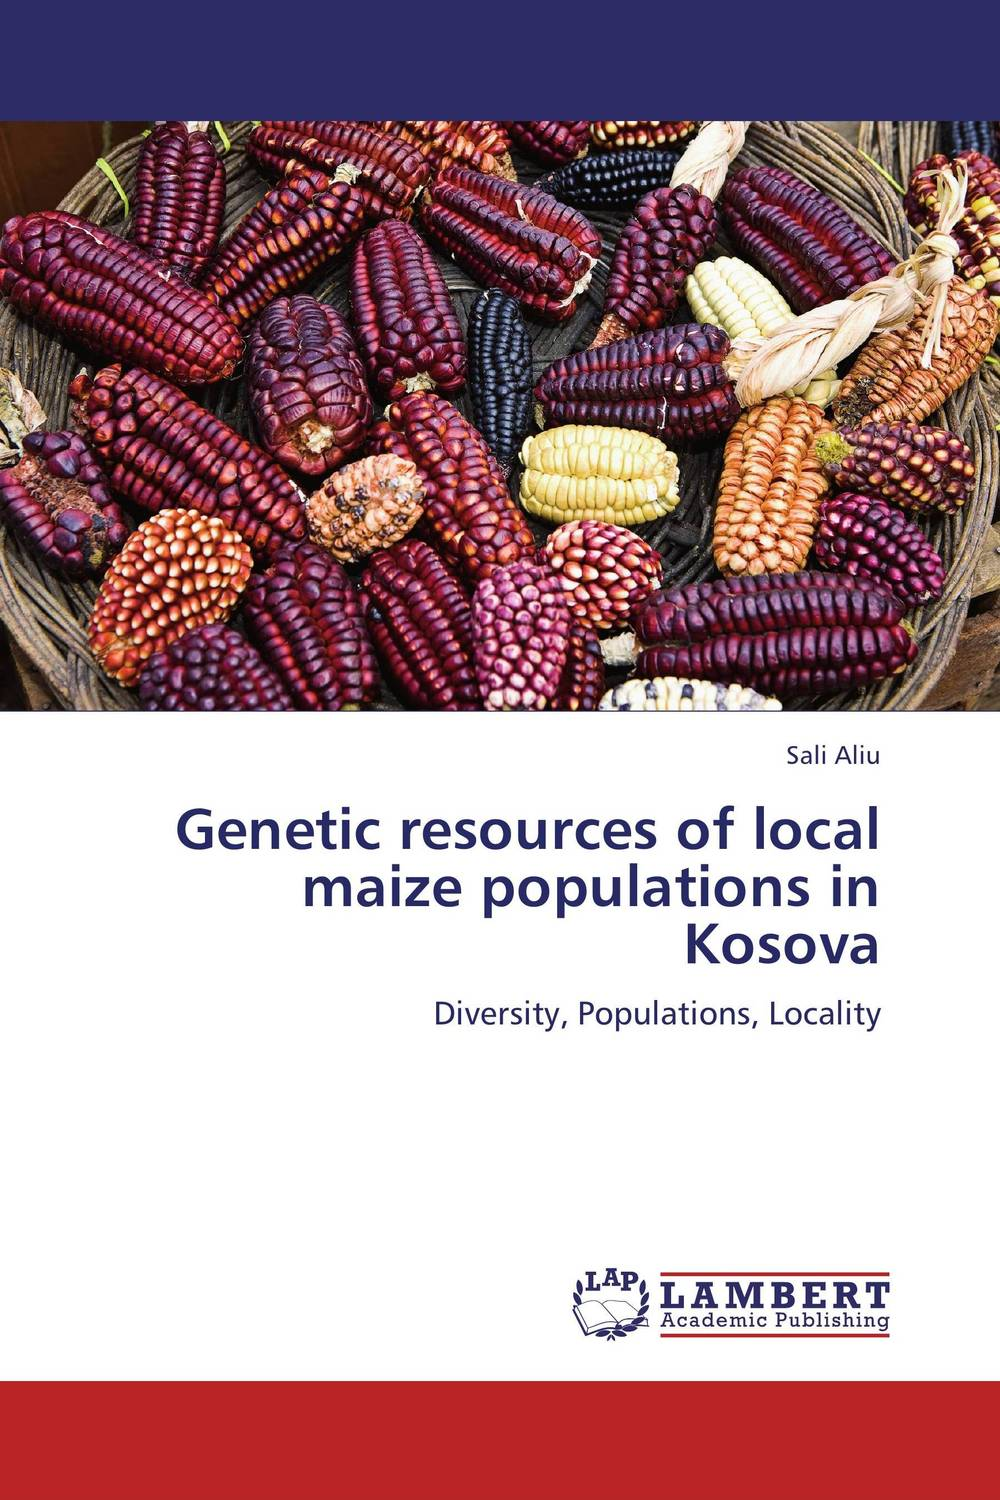 Genetic resources of local maize populations in Kosova